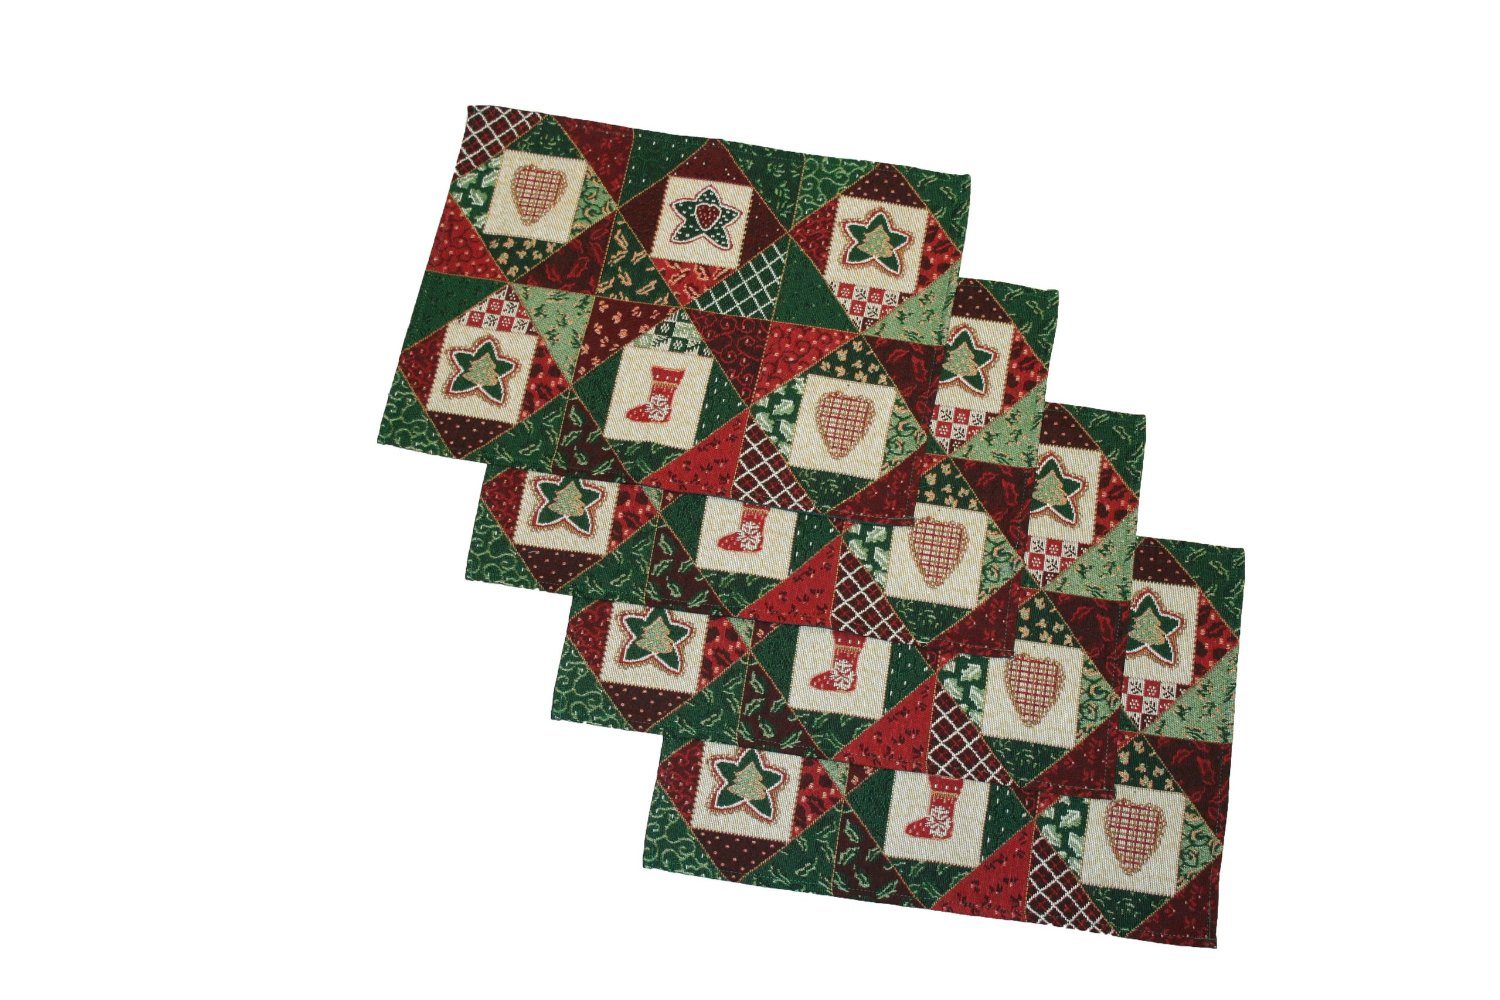 Christmas Holiday Tapestry Placemats Set of 4 : leaves from www.ebay.com size 1500 x 1000 jpeg 220kB